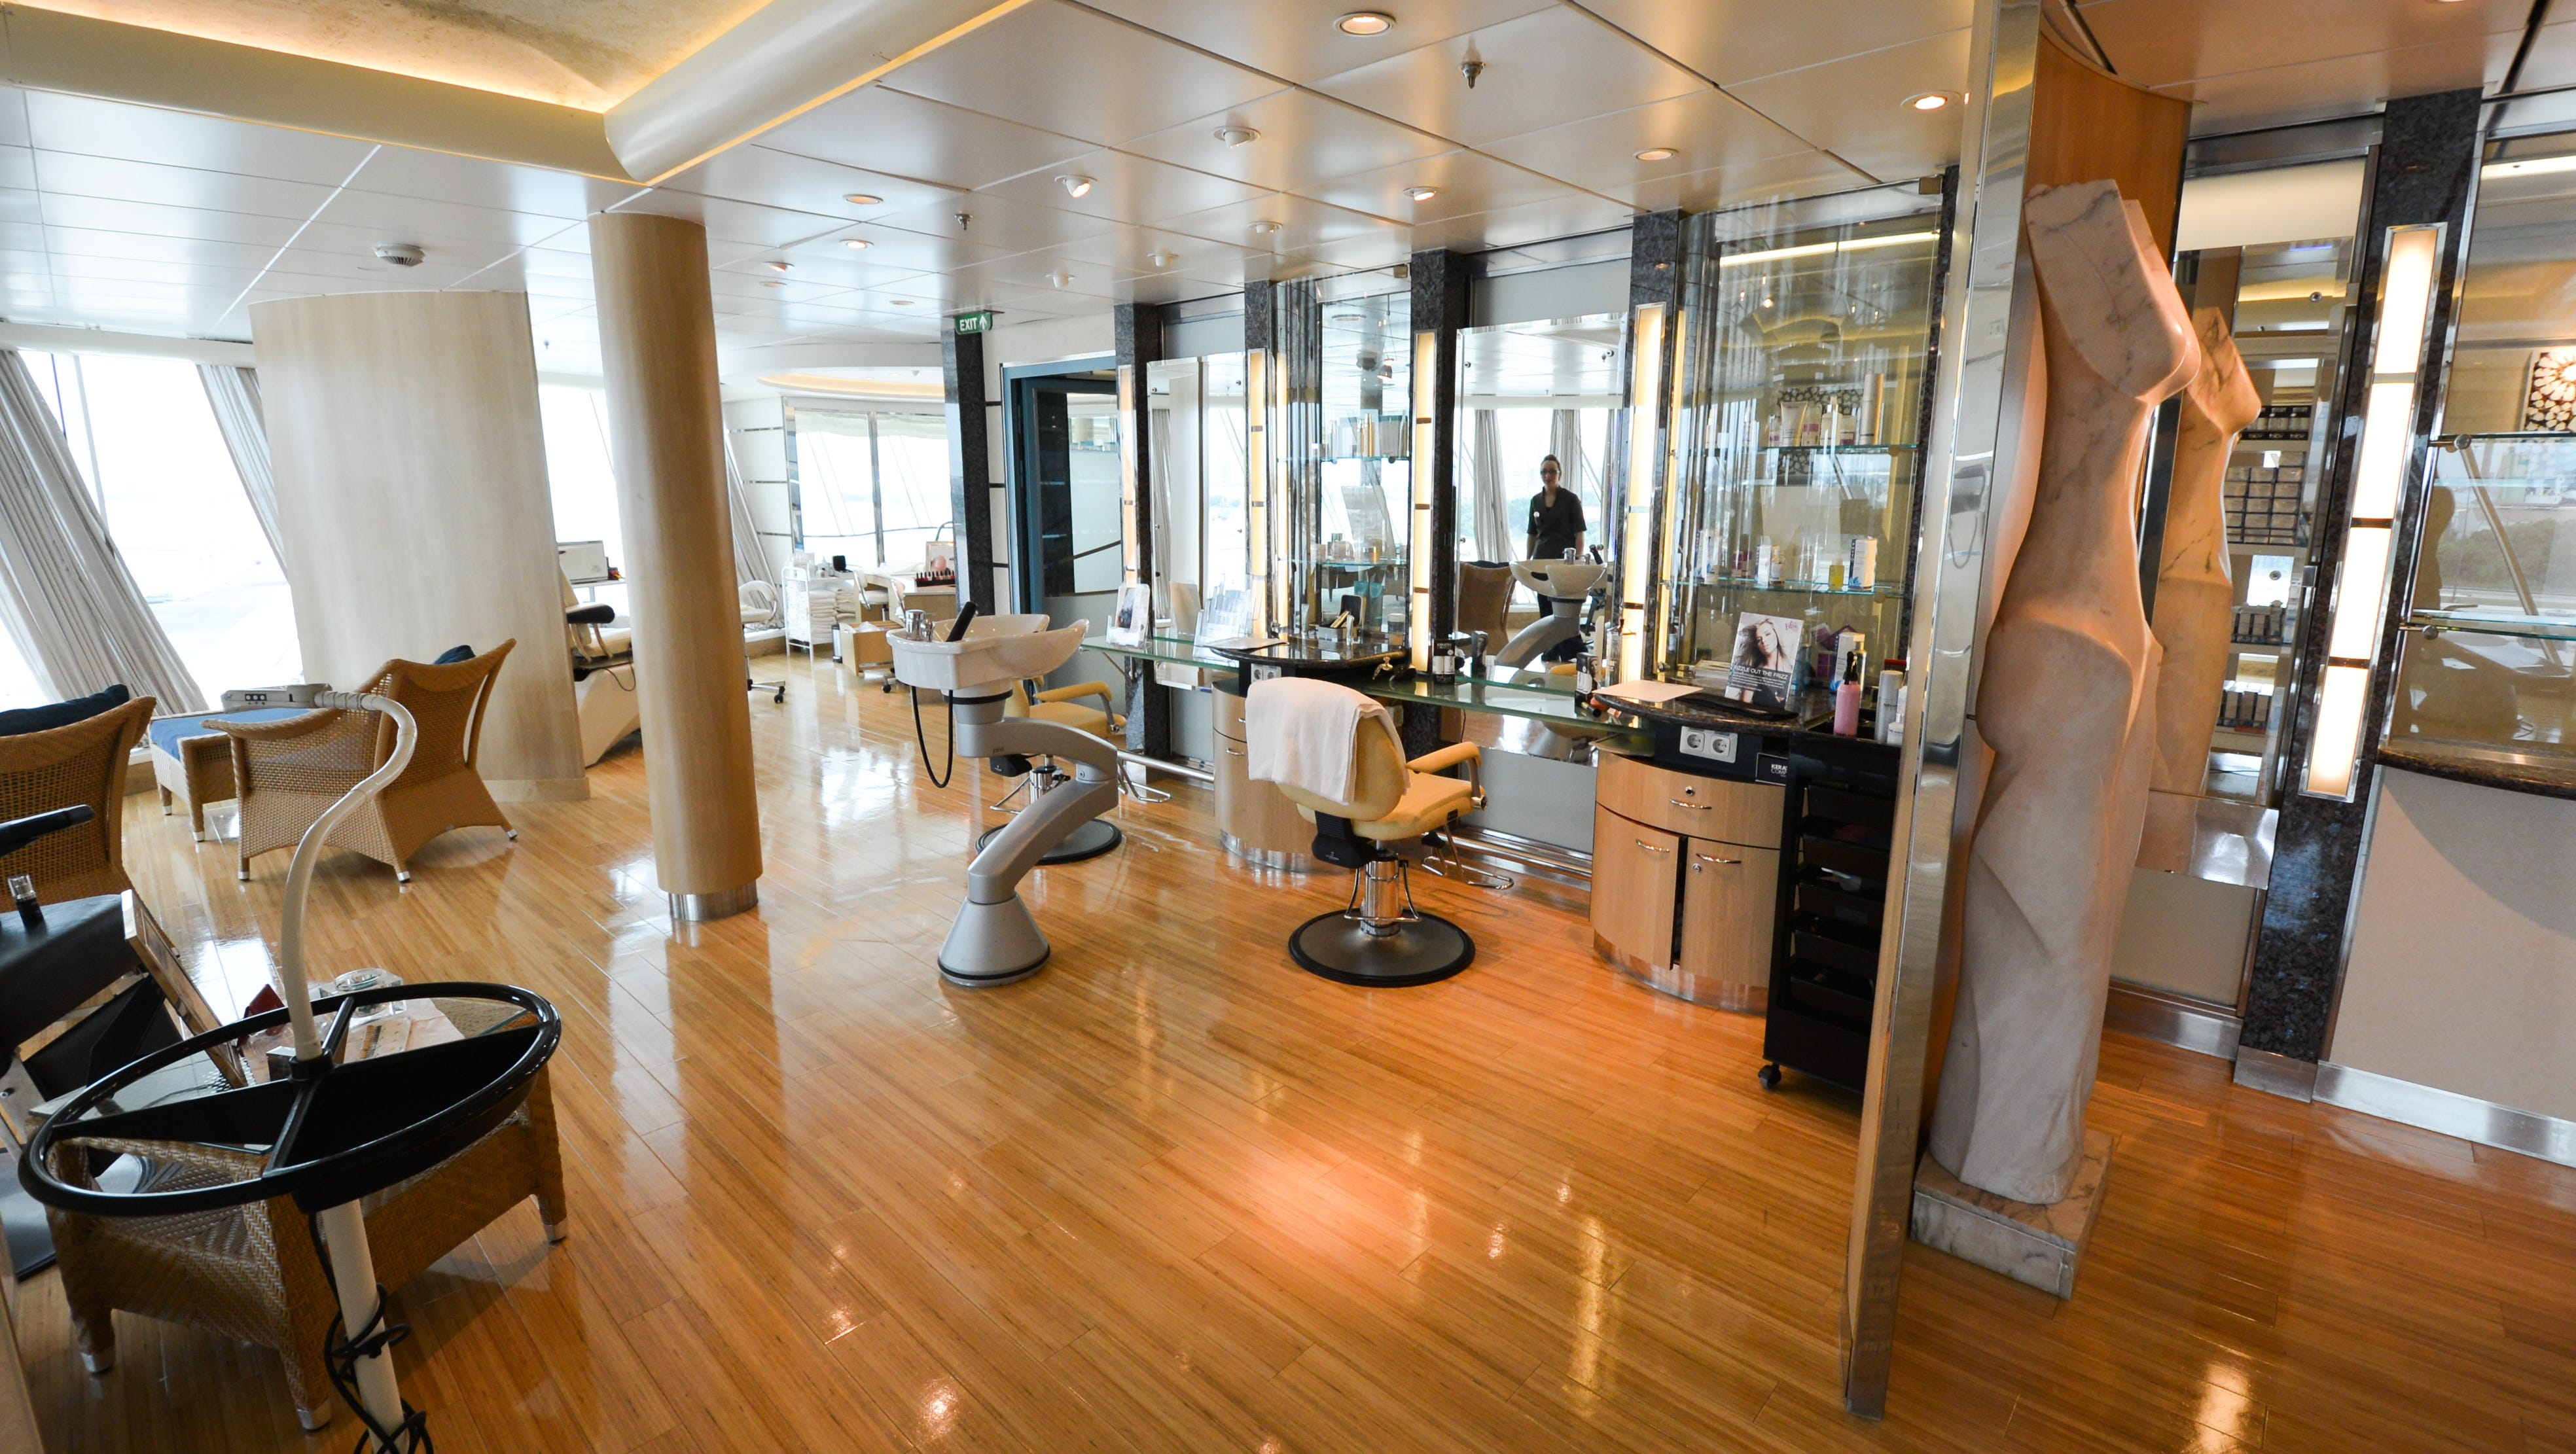 The Vitality Spa is home to a full-service beauty salon.